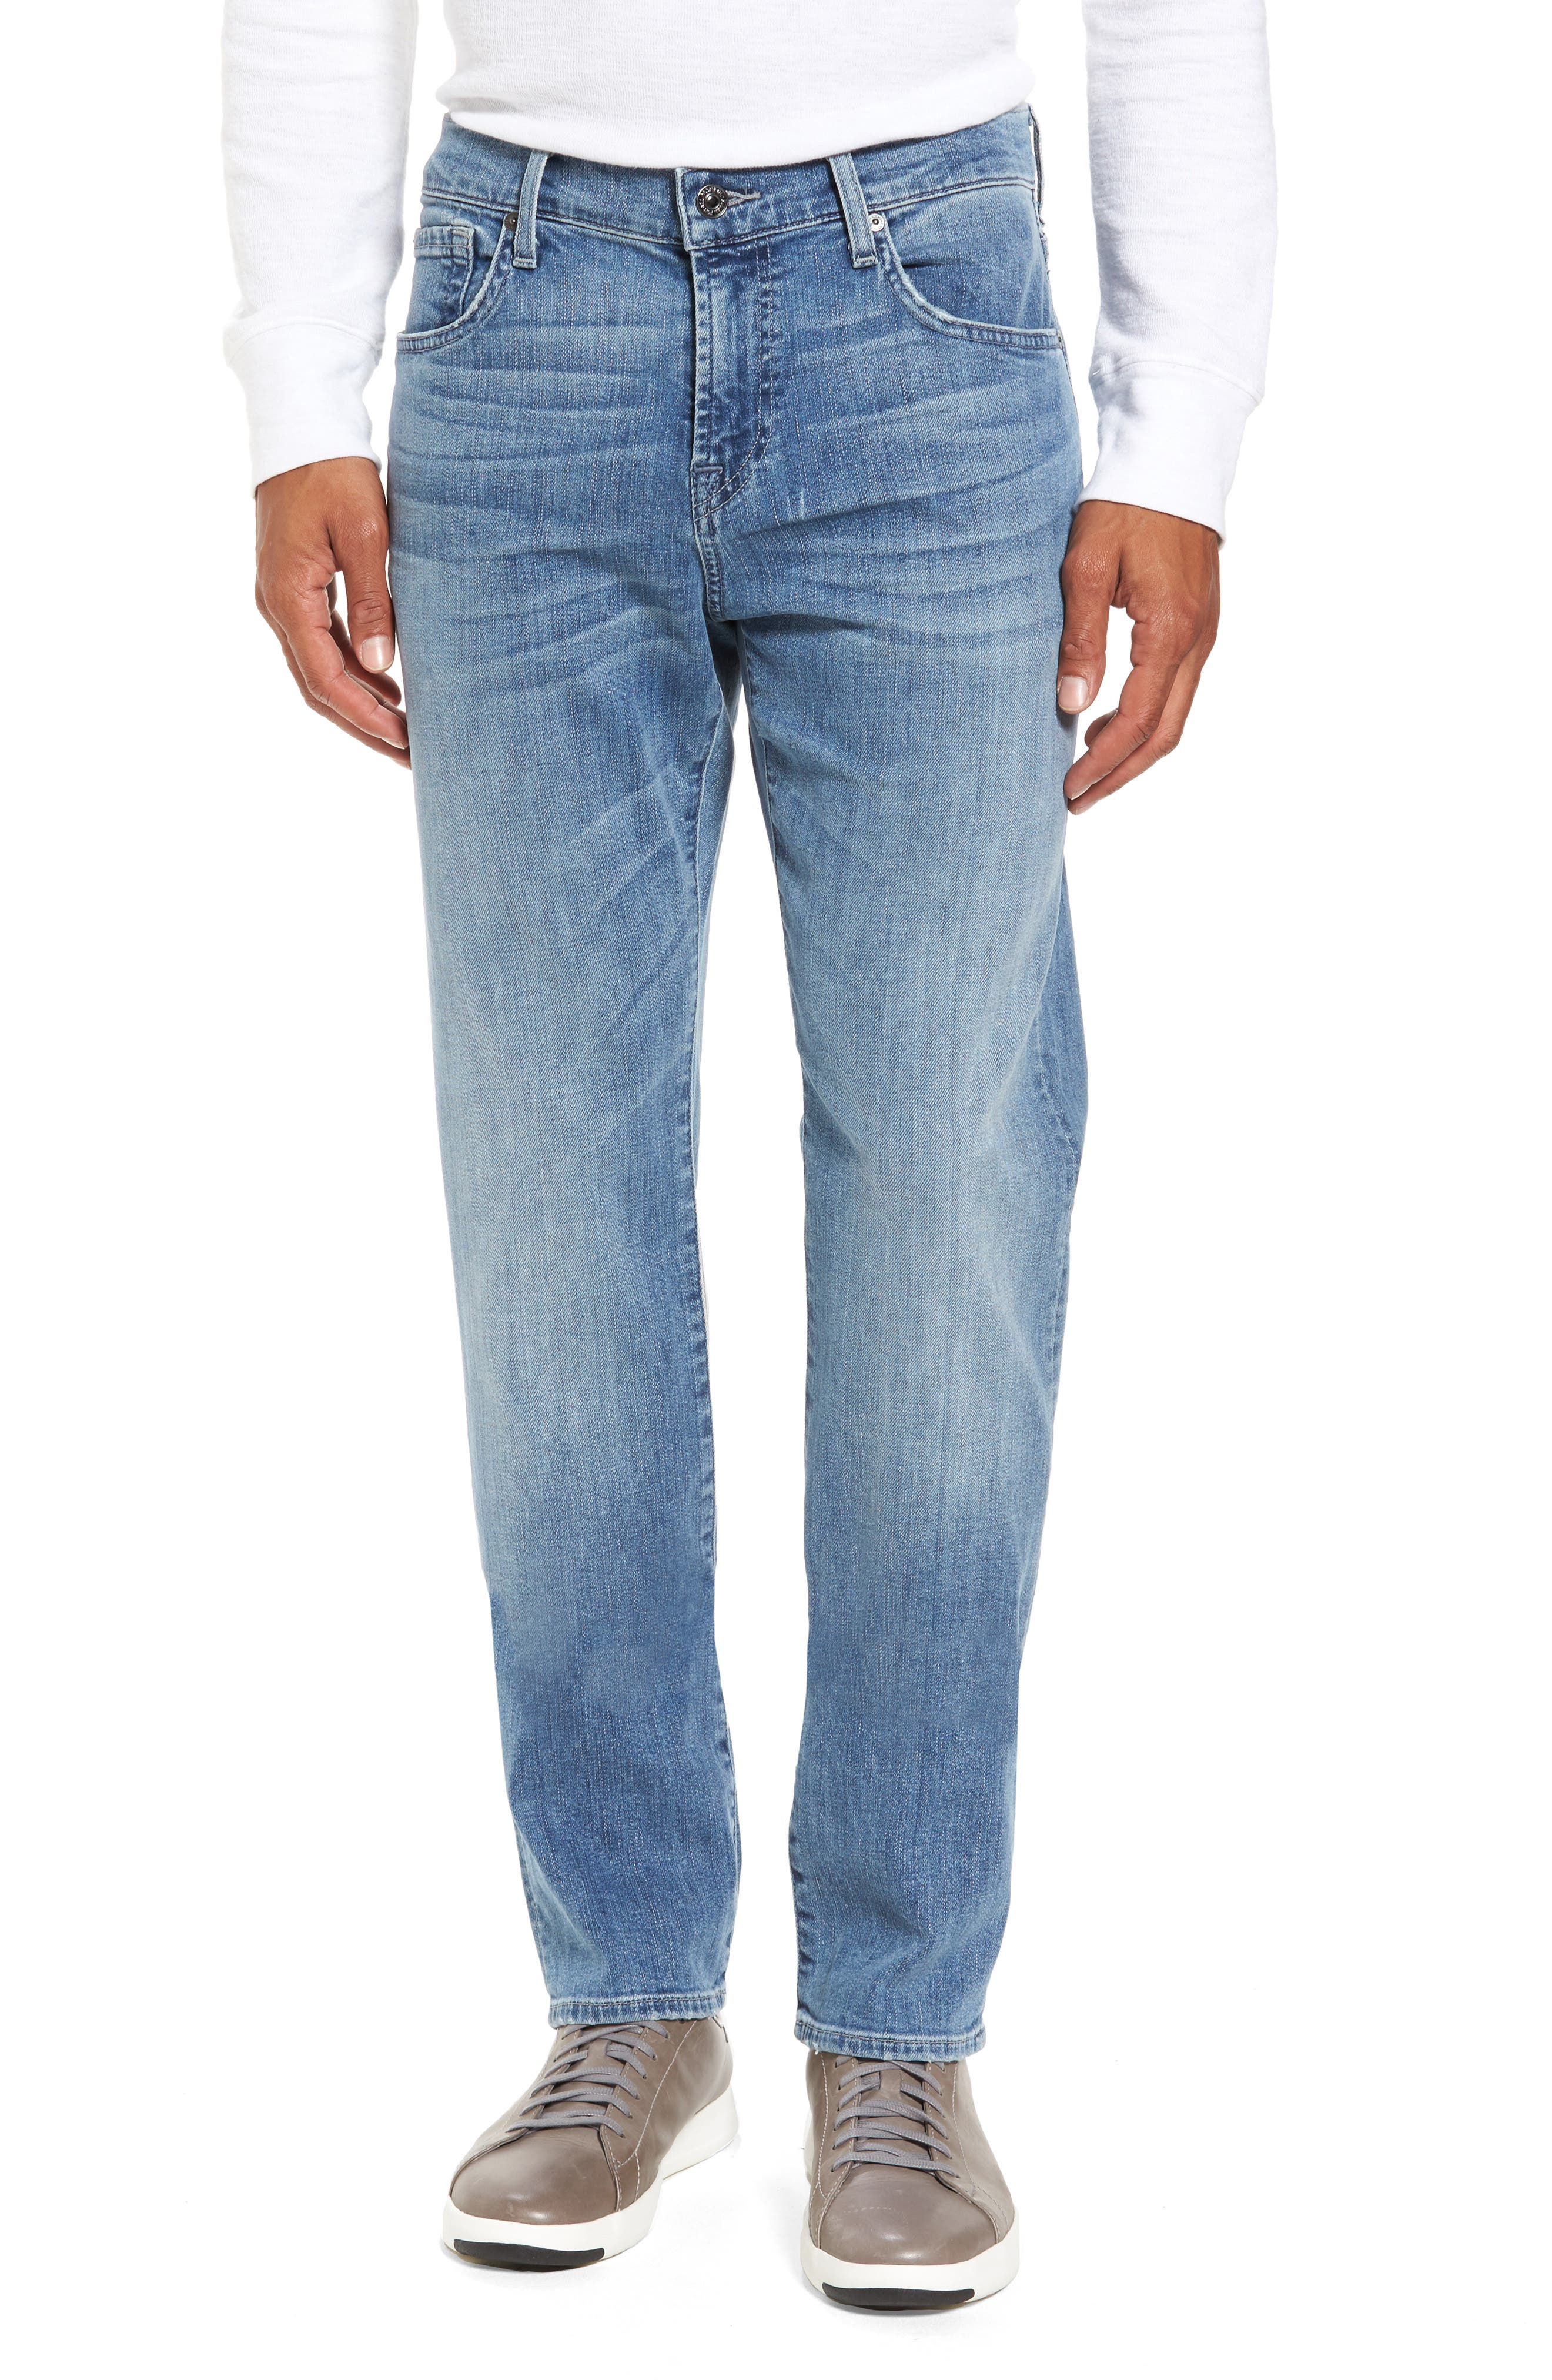 7 For All Mankind Slim Straight Leg Jeans,                         Main,                         color, 400